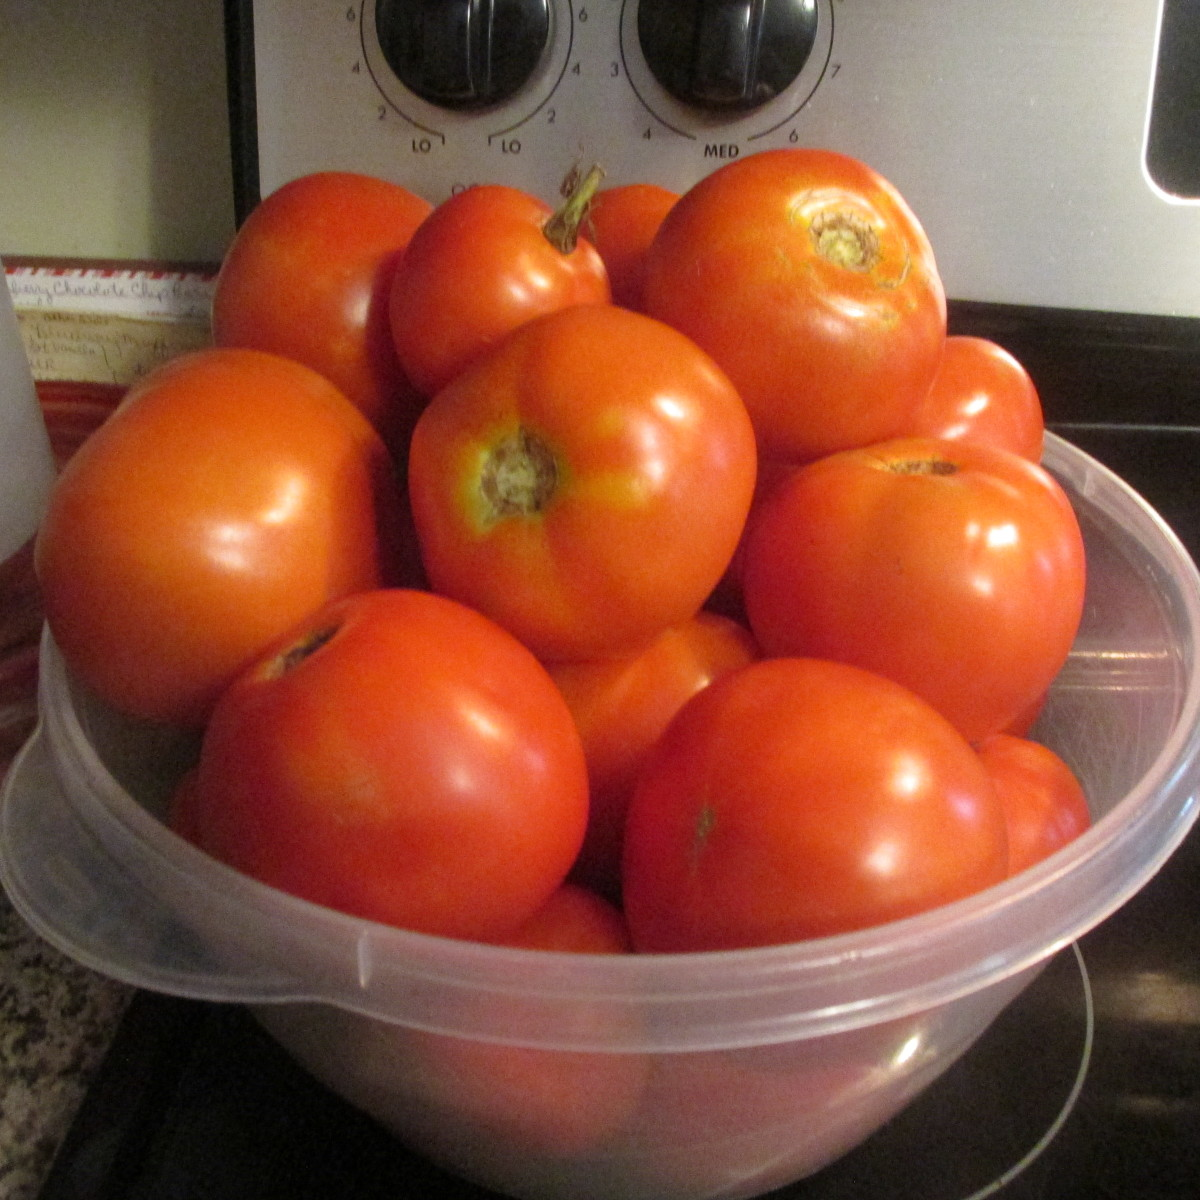 Tomatoes from our garden.